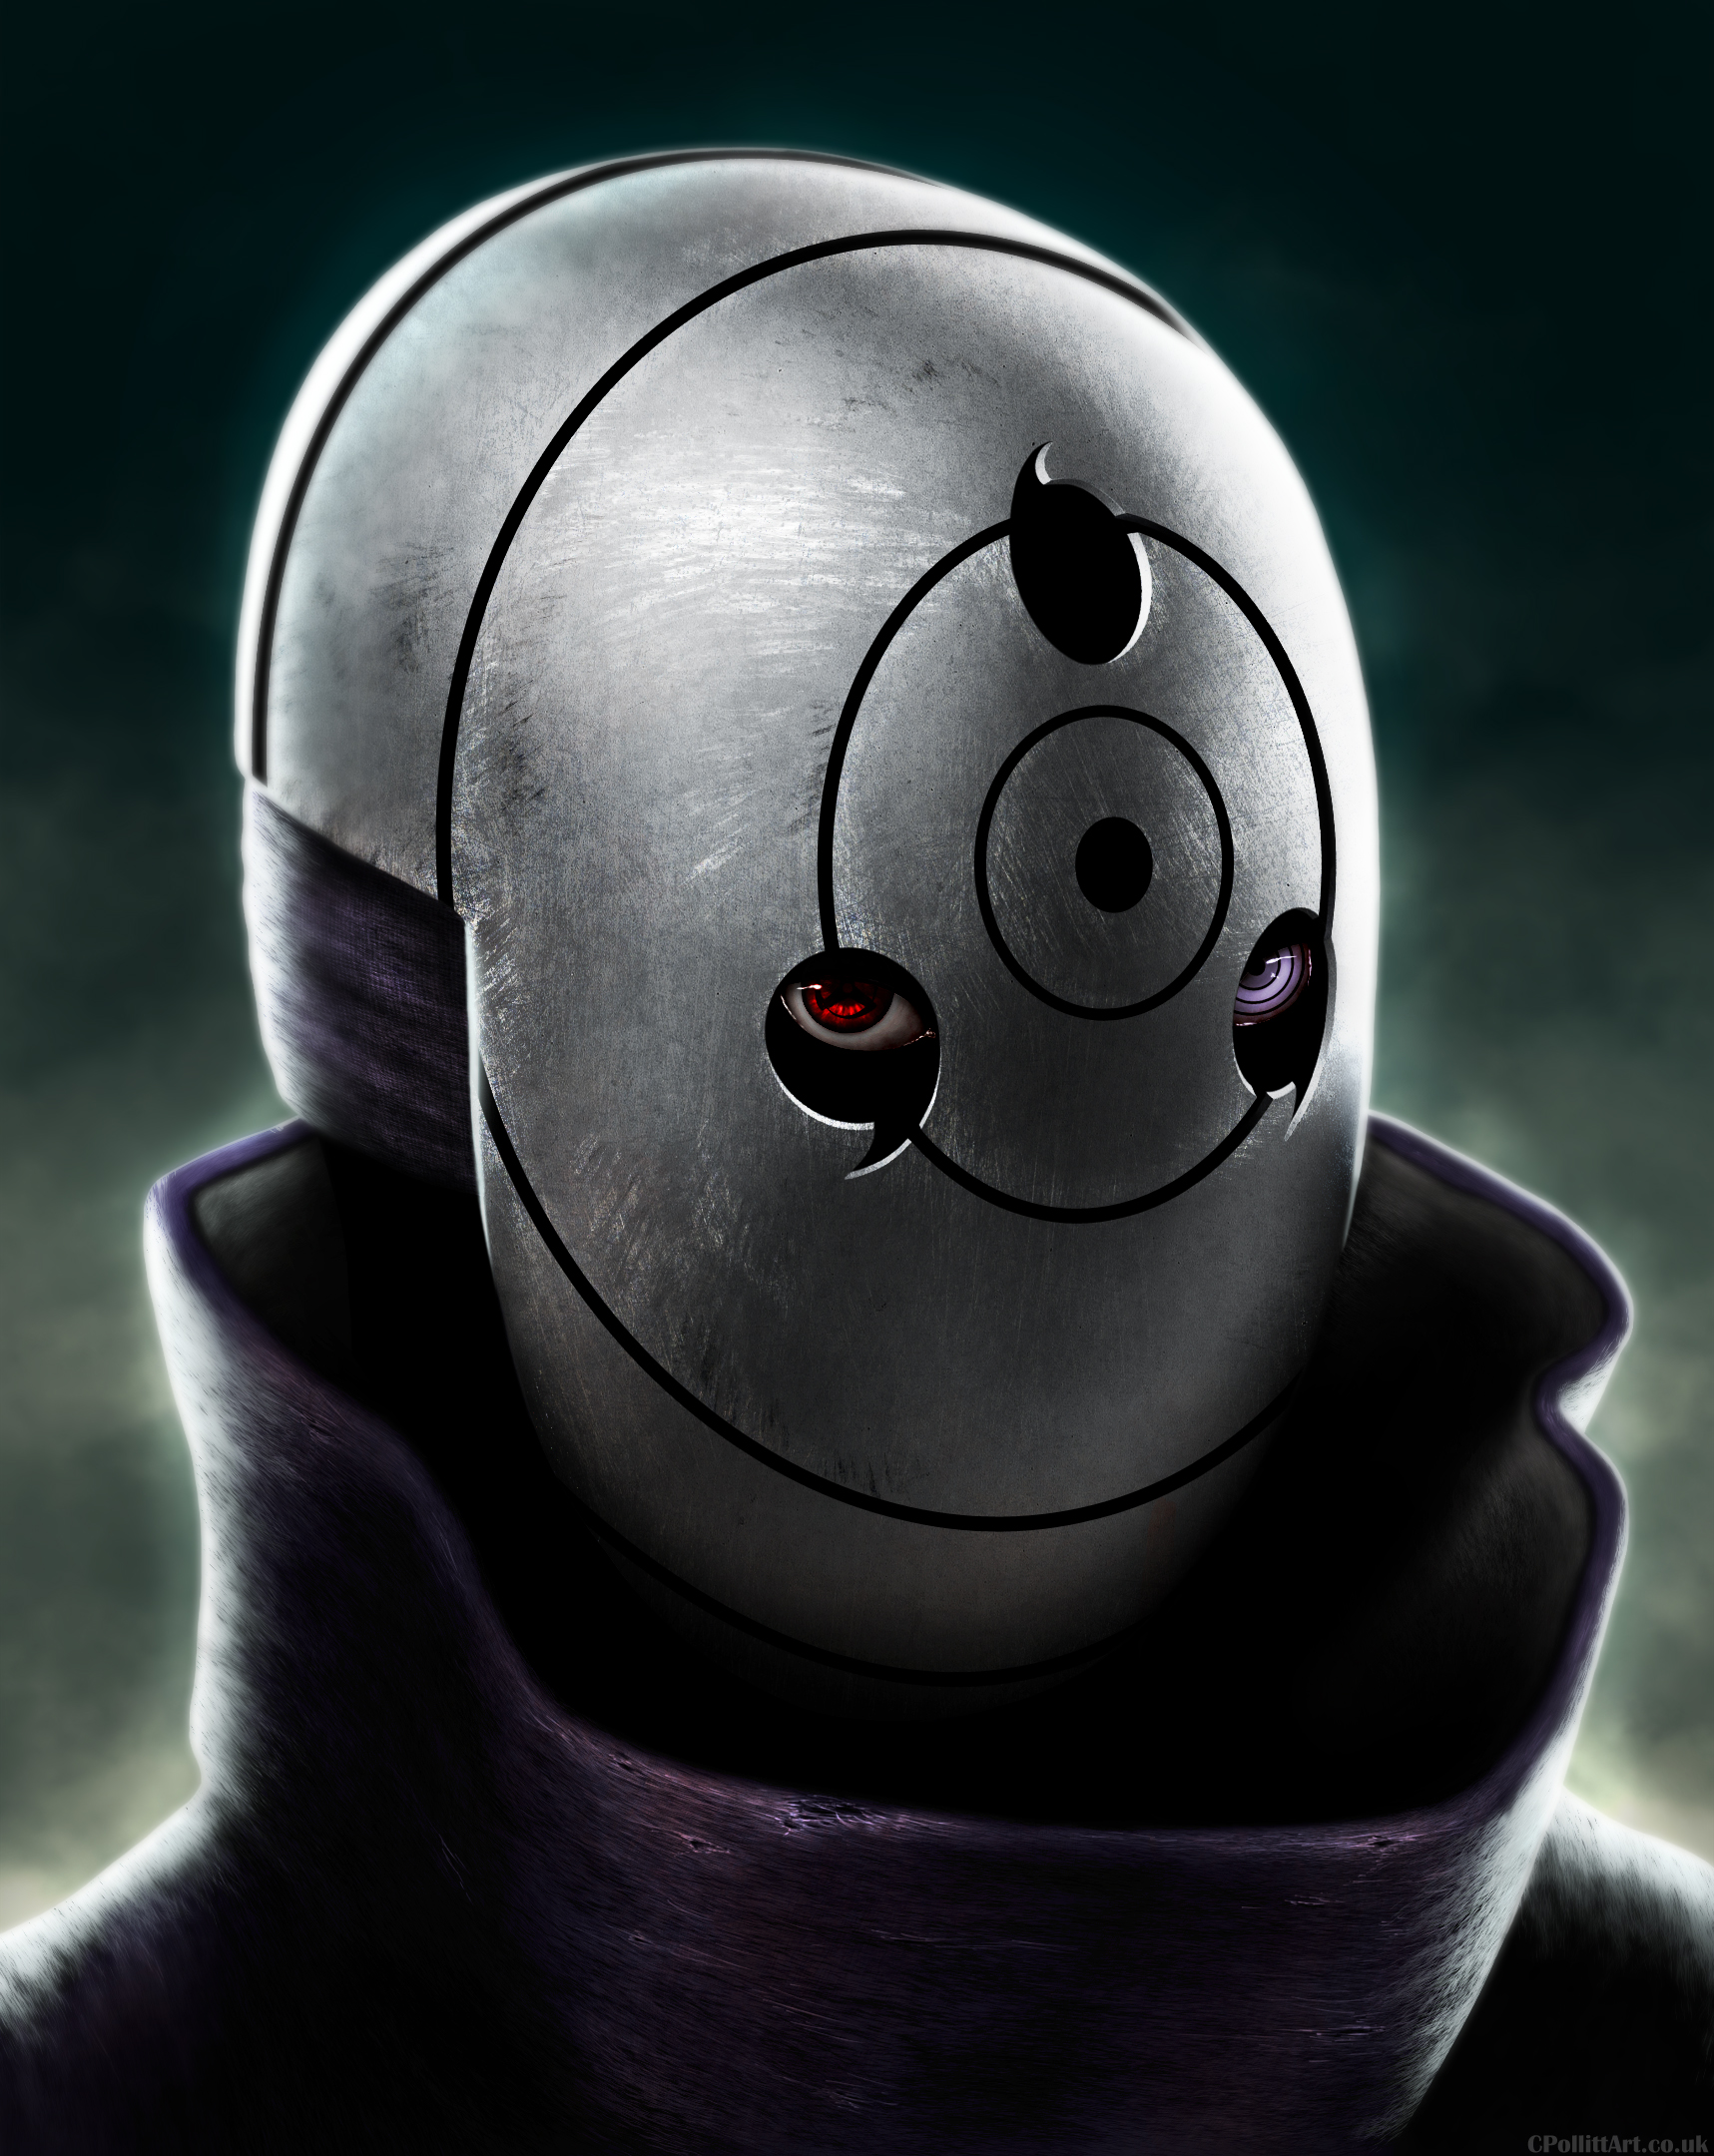 Obito Uchiha White Mask by MaskedVertexEater on DeviantArt